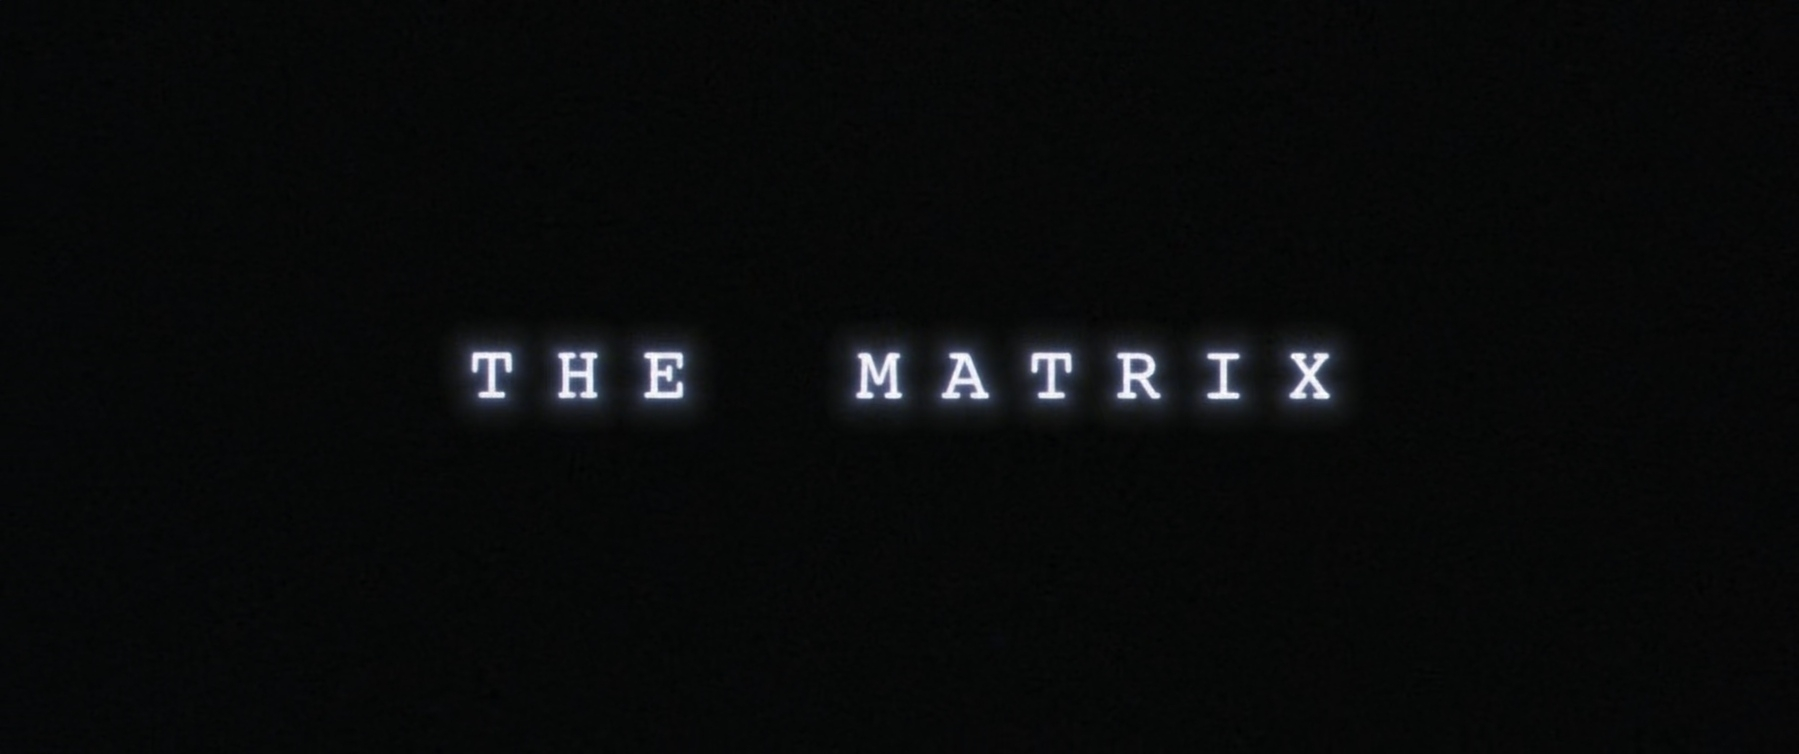 The title card for the film, The Matrix.